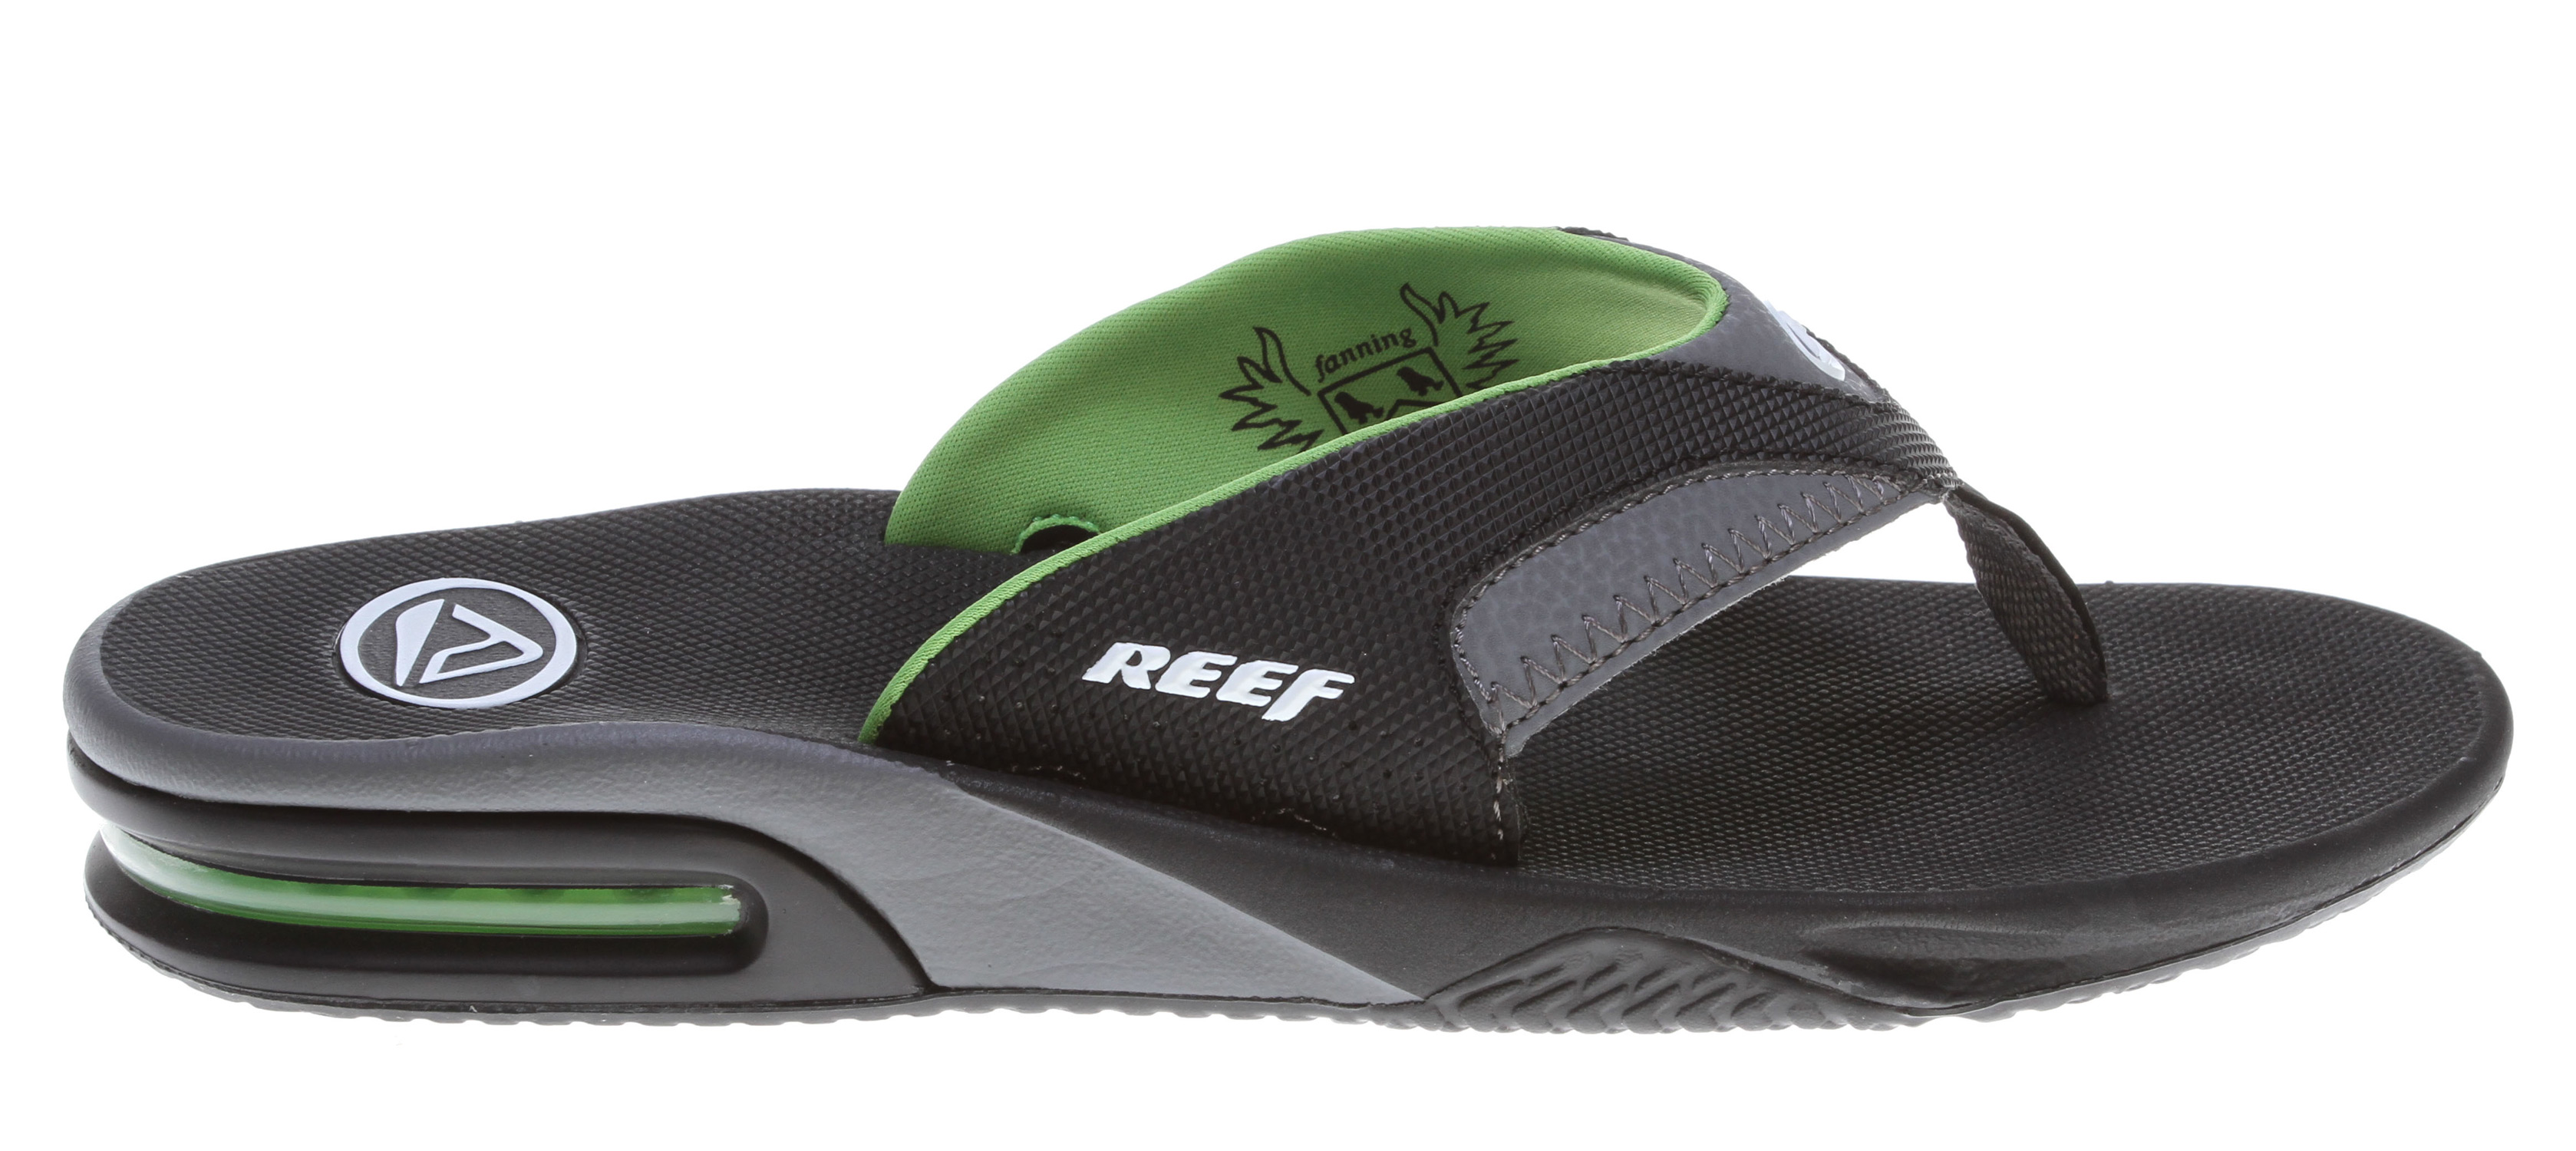 Surf Key Features of the Reef Fanning Sandals: Mick Fanning's signature footwear Guy's Performance Sandal Comfortable, water friendly synthetic nubuck upper Contoured compression molded EVA footbed with anatomical arch support Full 360° heel airbag enclosed in soft polyurethane Church key to open your soda bottle Reef icon herringbone rubber outsole - $34.95